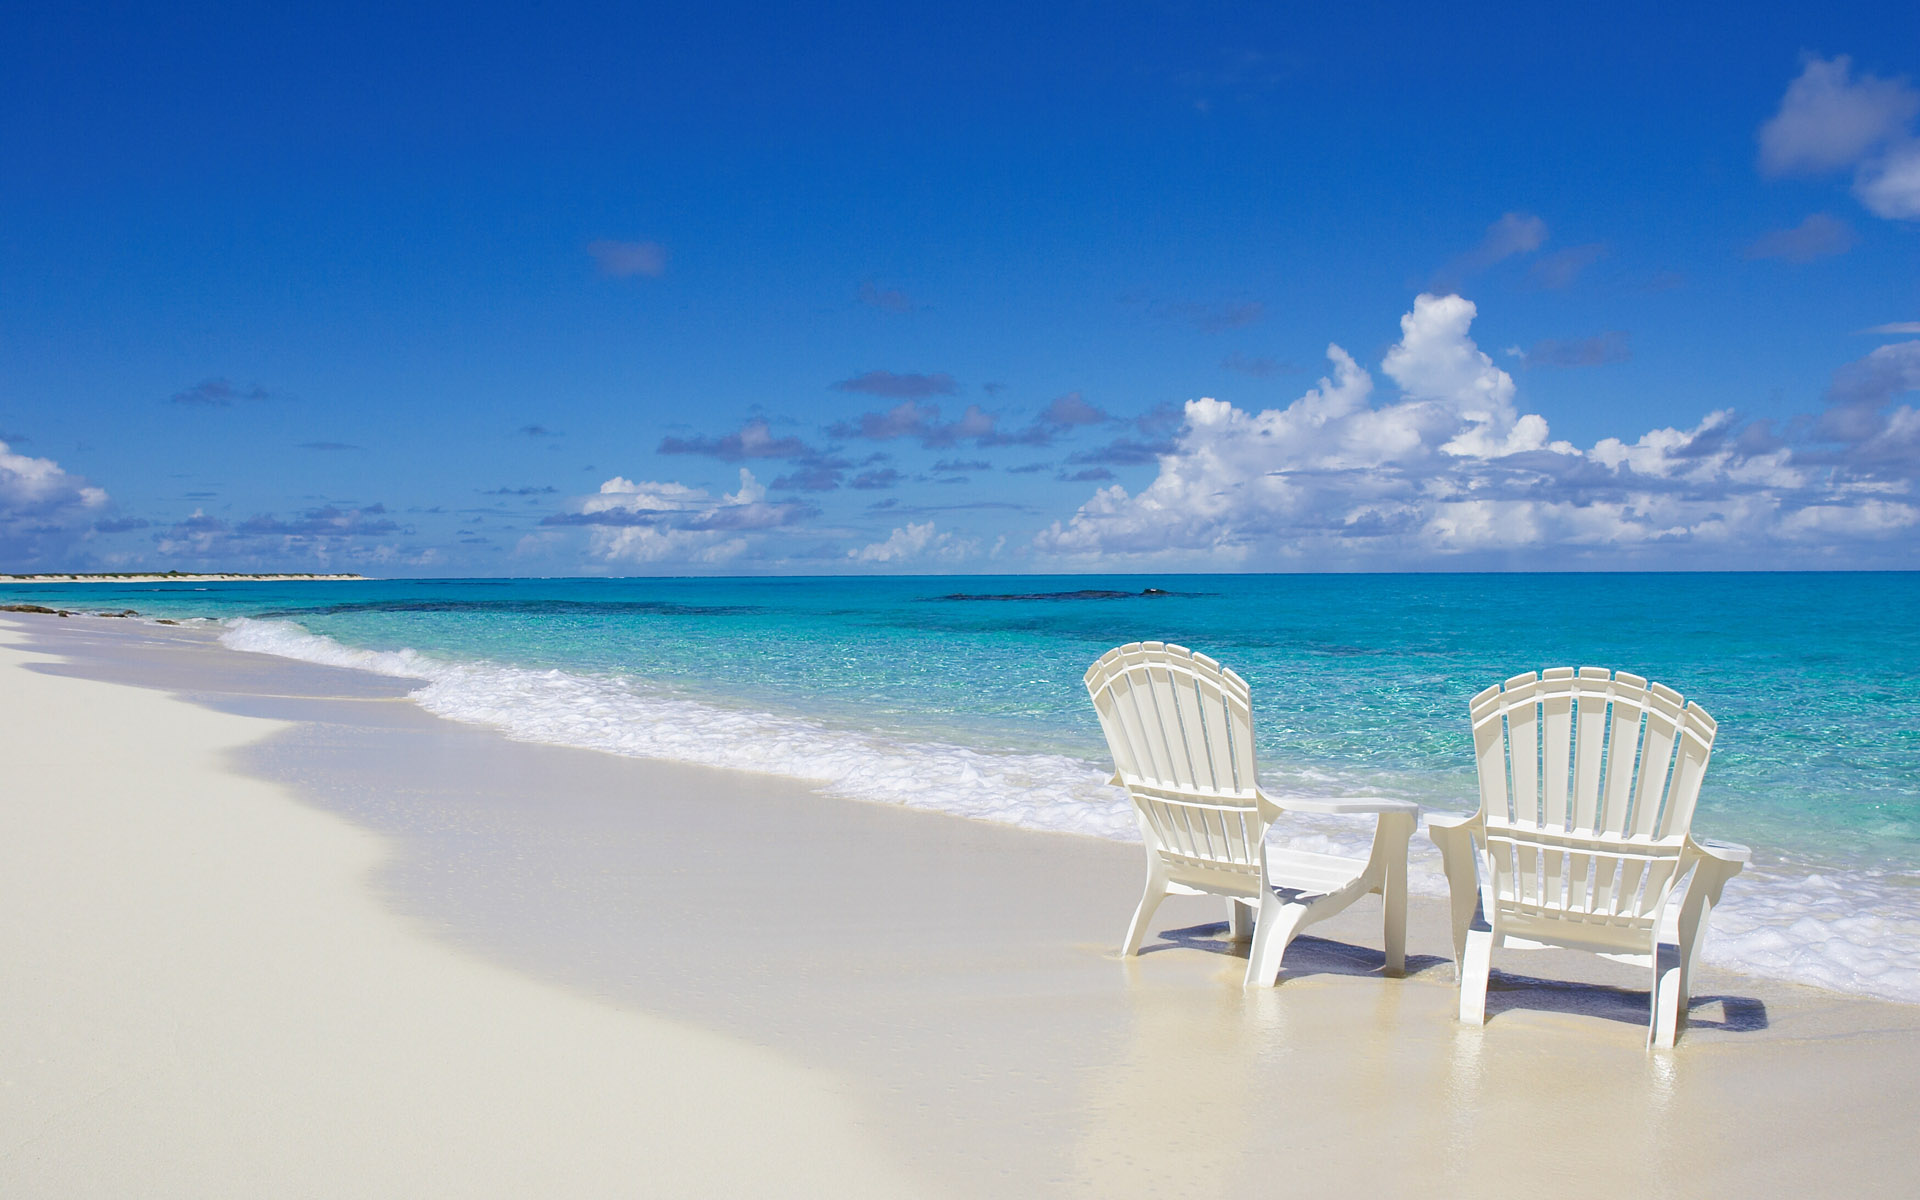 Beach Chair Desktop Wallpaper: Beach Chairs On The Shore HD Wallpaper